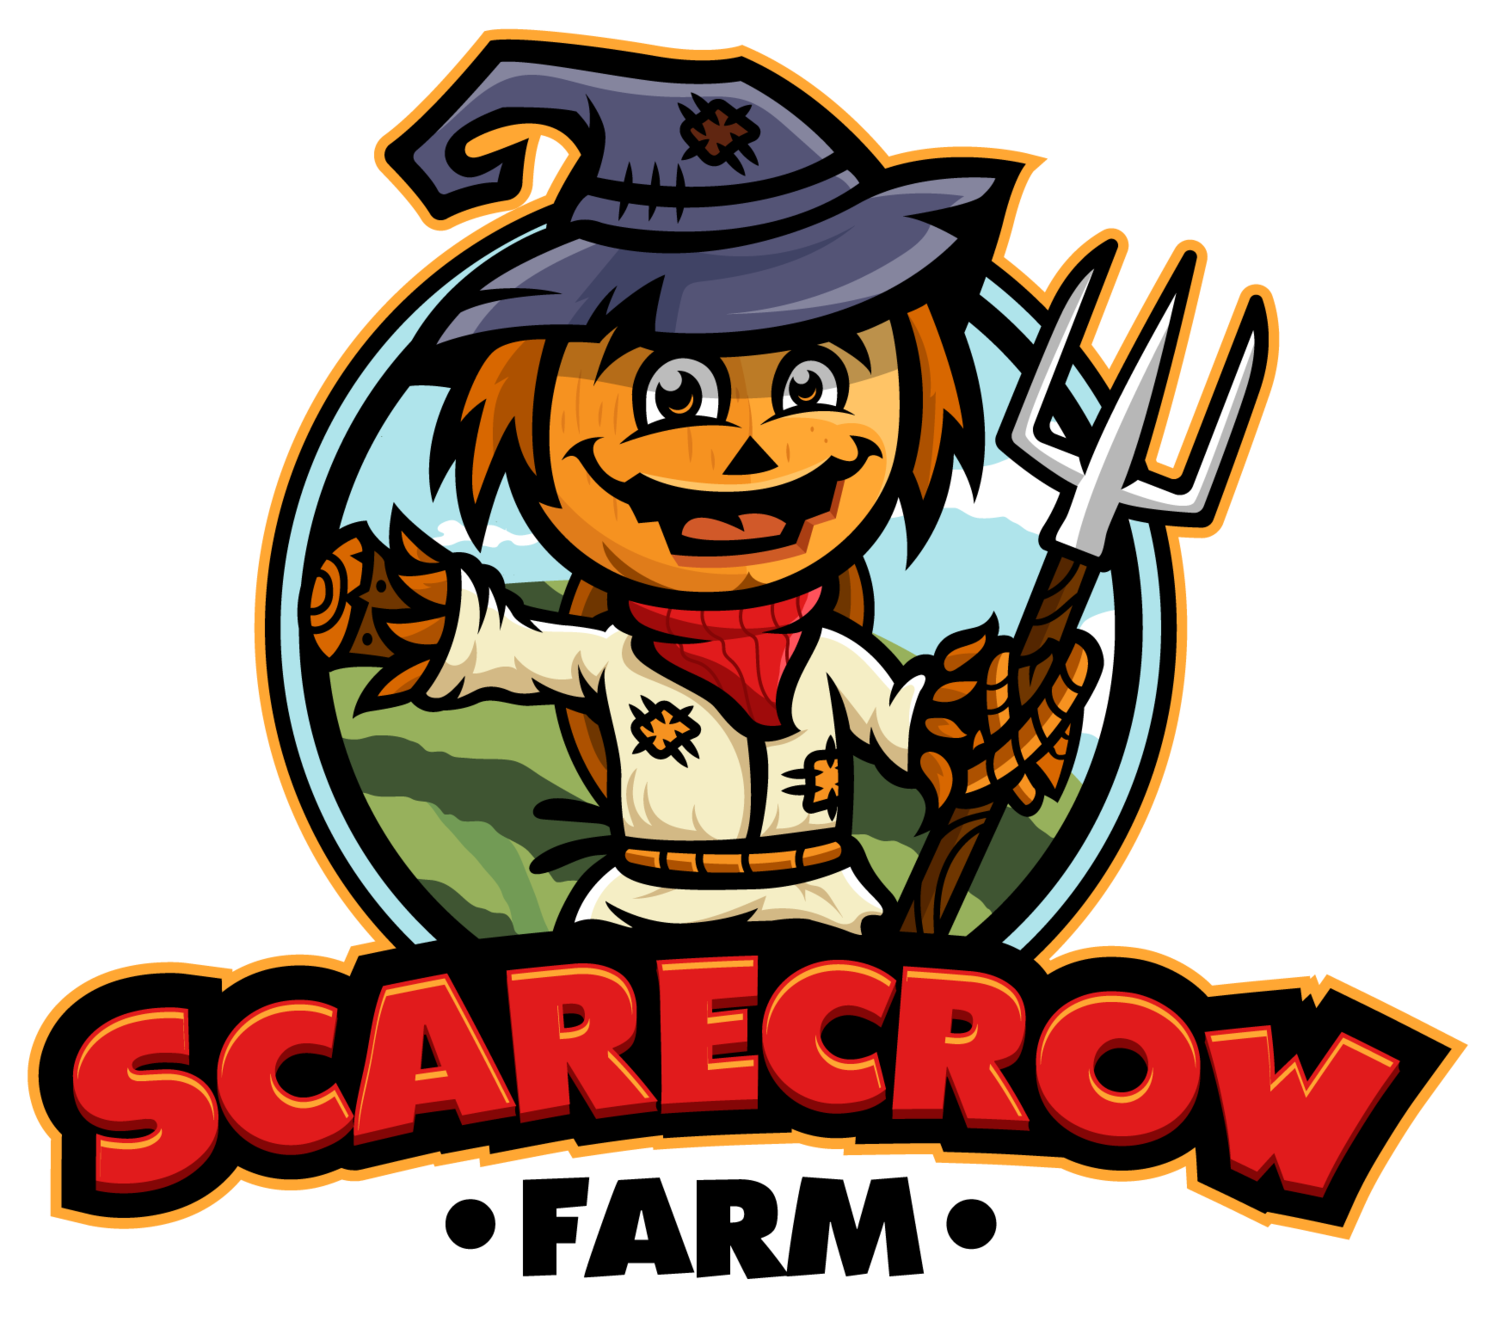 Dating scarecrow would include